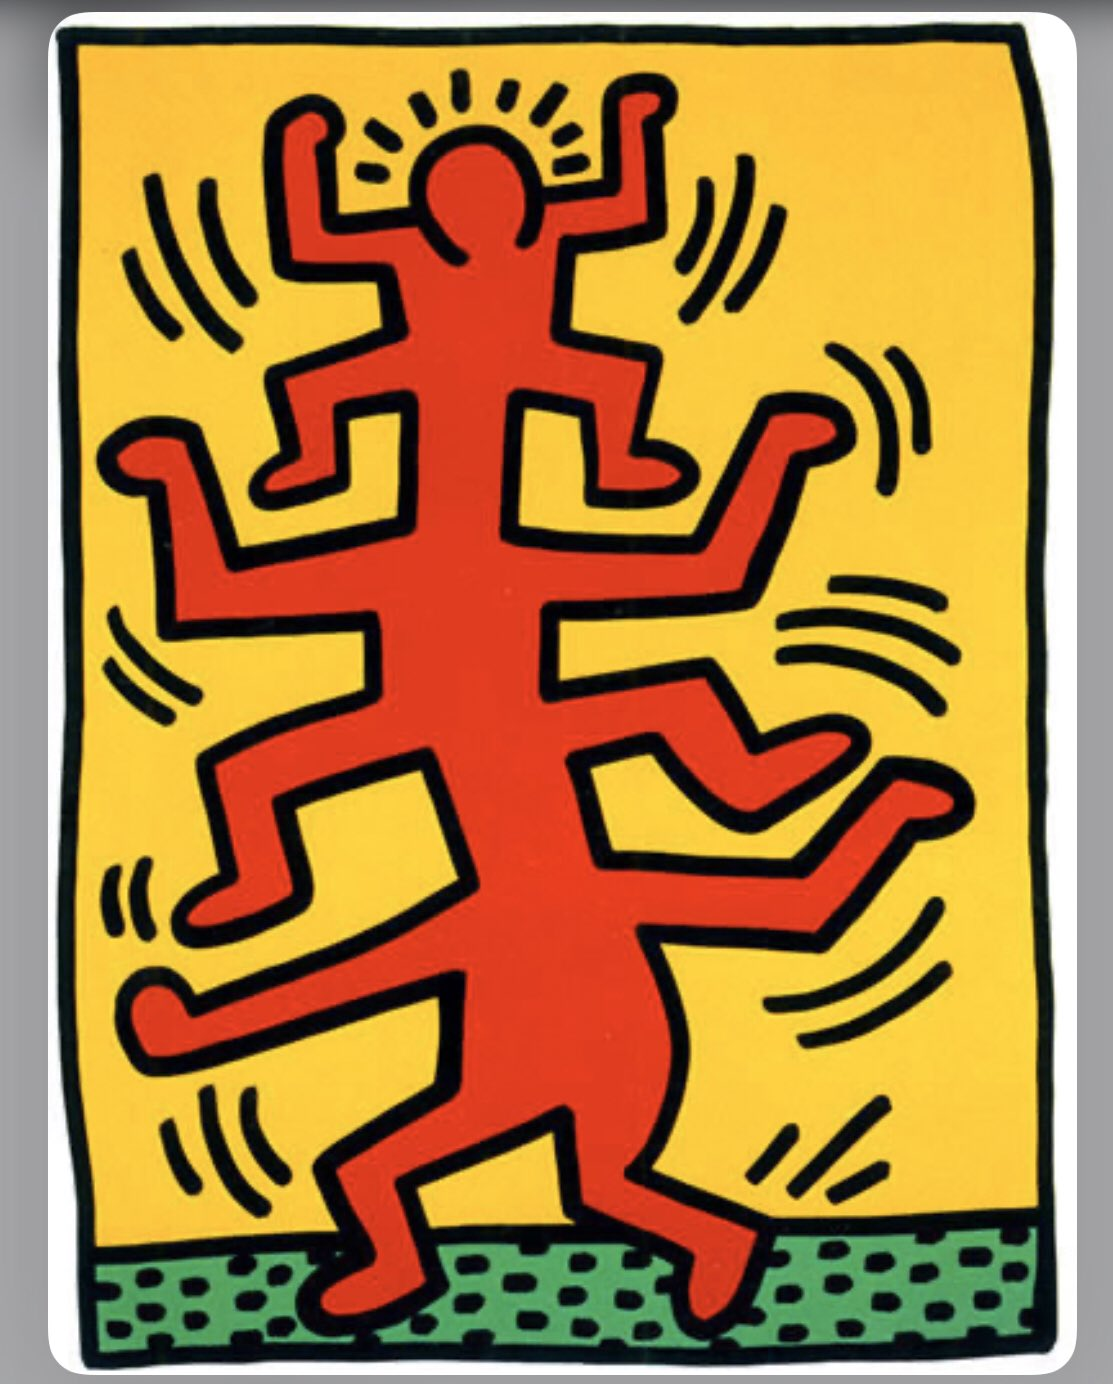 Happy birthday to Keith Haring!